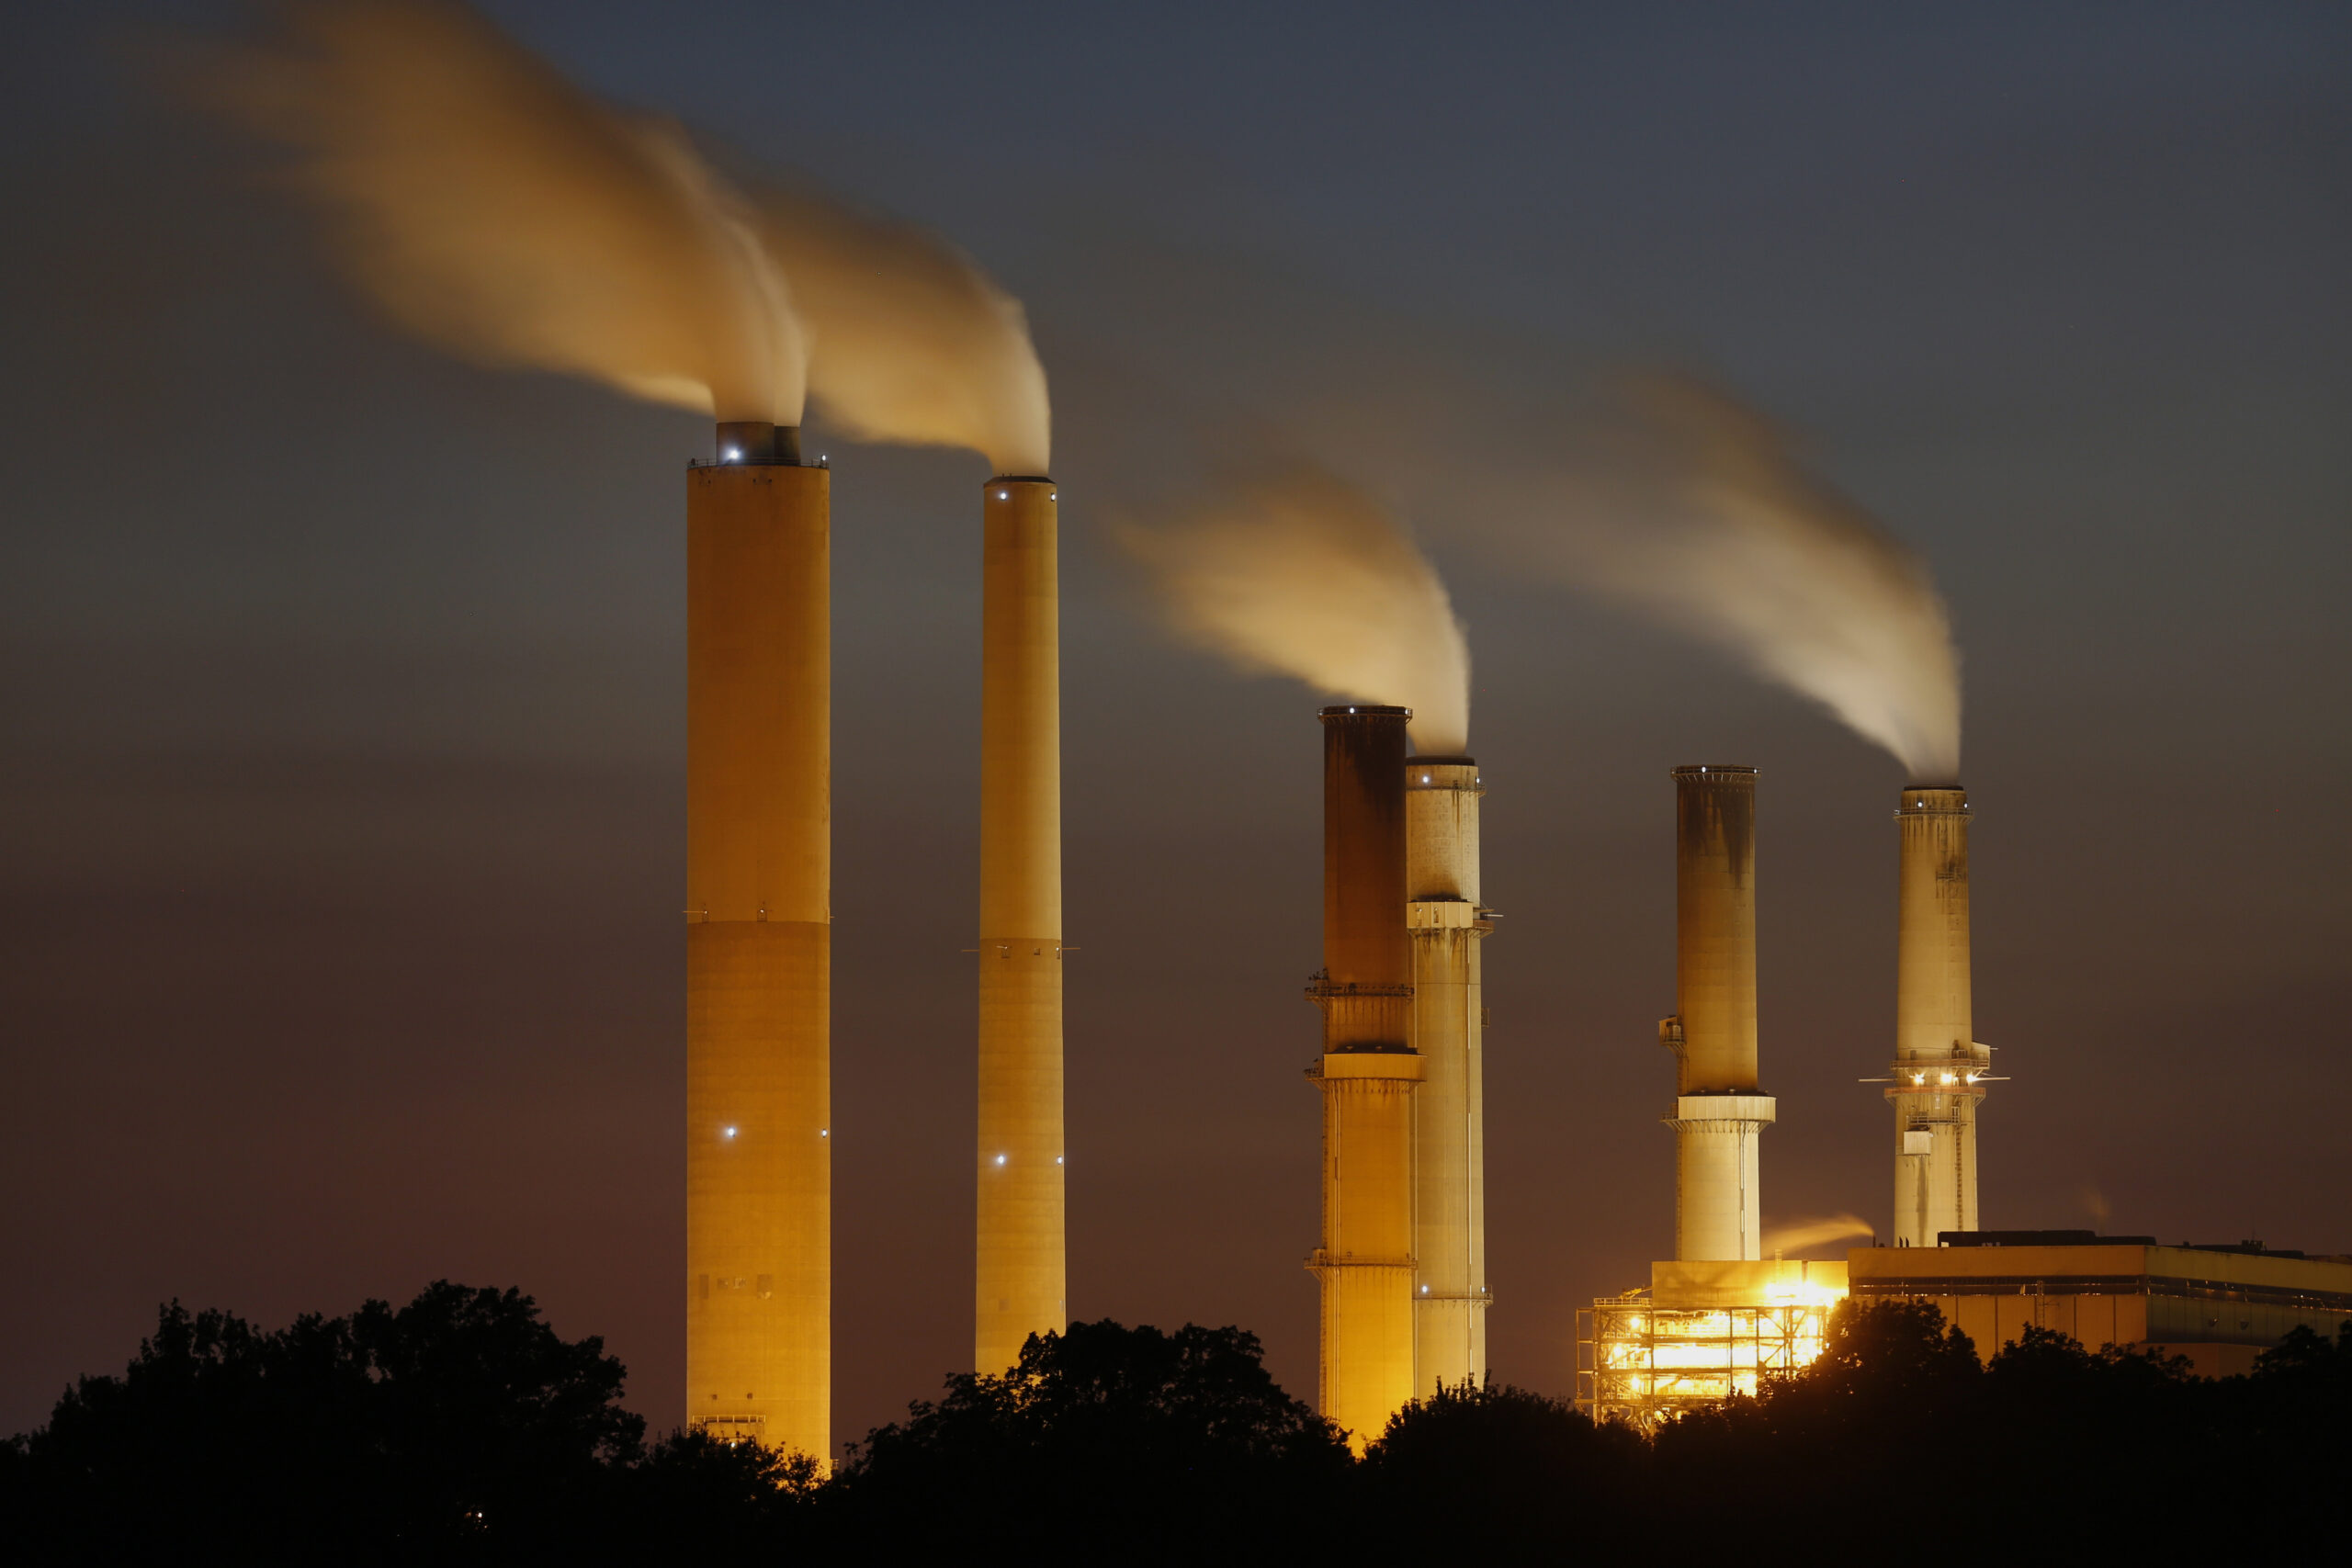 Emissions rise from stacks the Duke Energy Corp. Gibson Station power plant at dusk in Owensville, Indiana, on Thursday, July 23, 2015. Credit: Luke Sharrett/Bloomberg via Getty Images